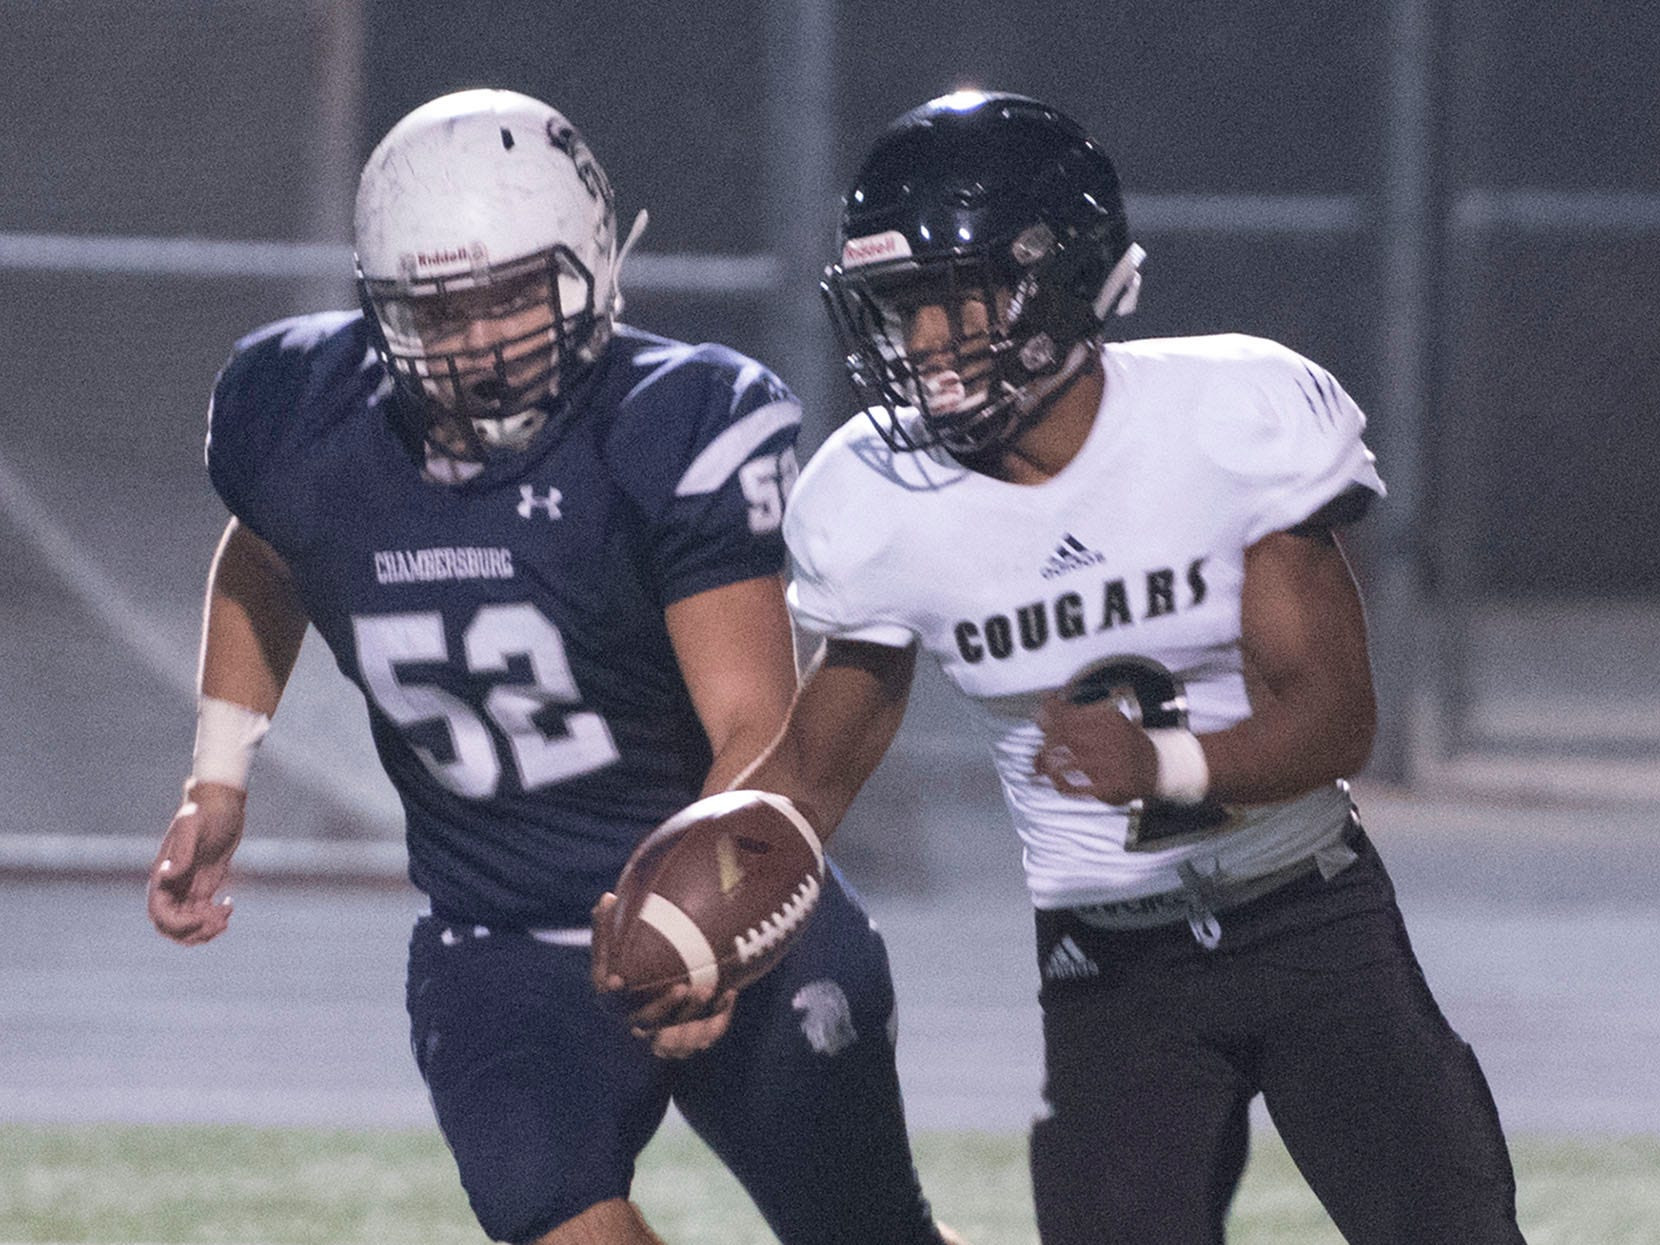 Chambersburg's Wyatt Hull (52) chases ball carrier Rynell Gantt, Jr. Chambersburg dropped a 28-13 game against Harrisburg in PIAA football on Friday, Oct. 12, 2018.